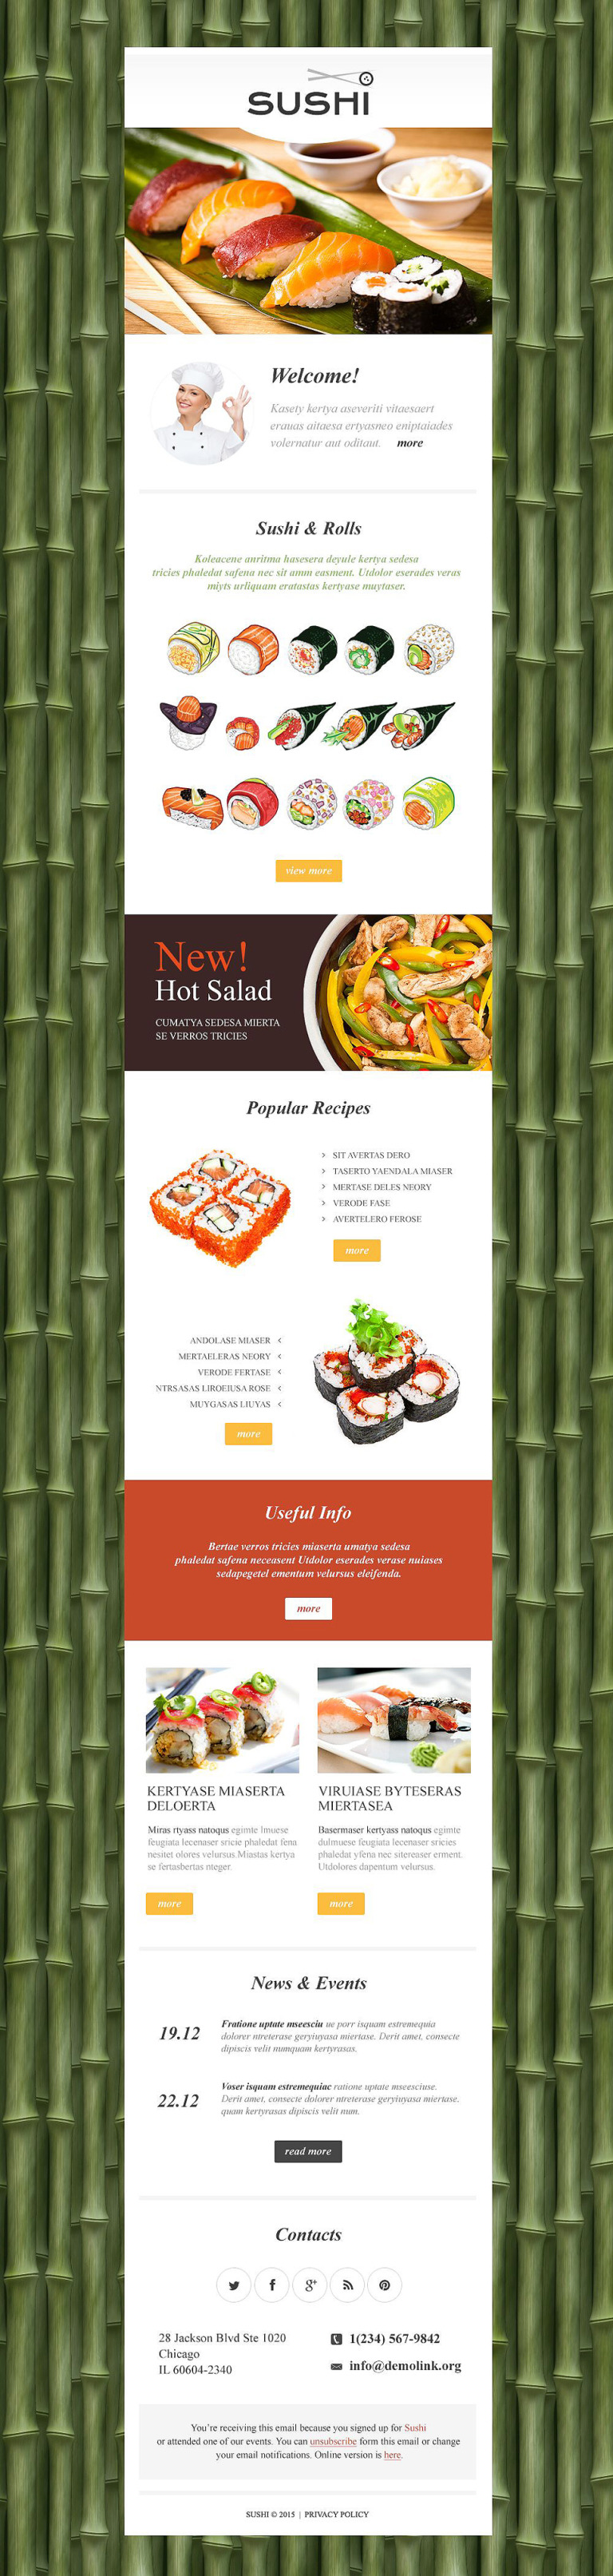 Sushi Bar Responsive Newsletter Template New Screenshots BIG